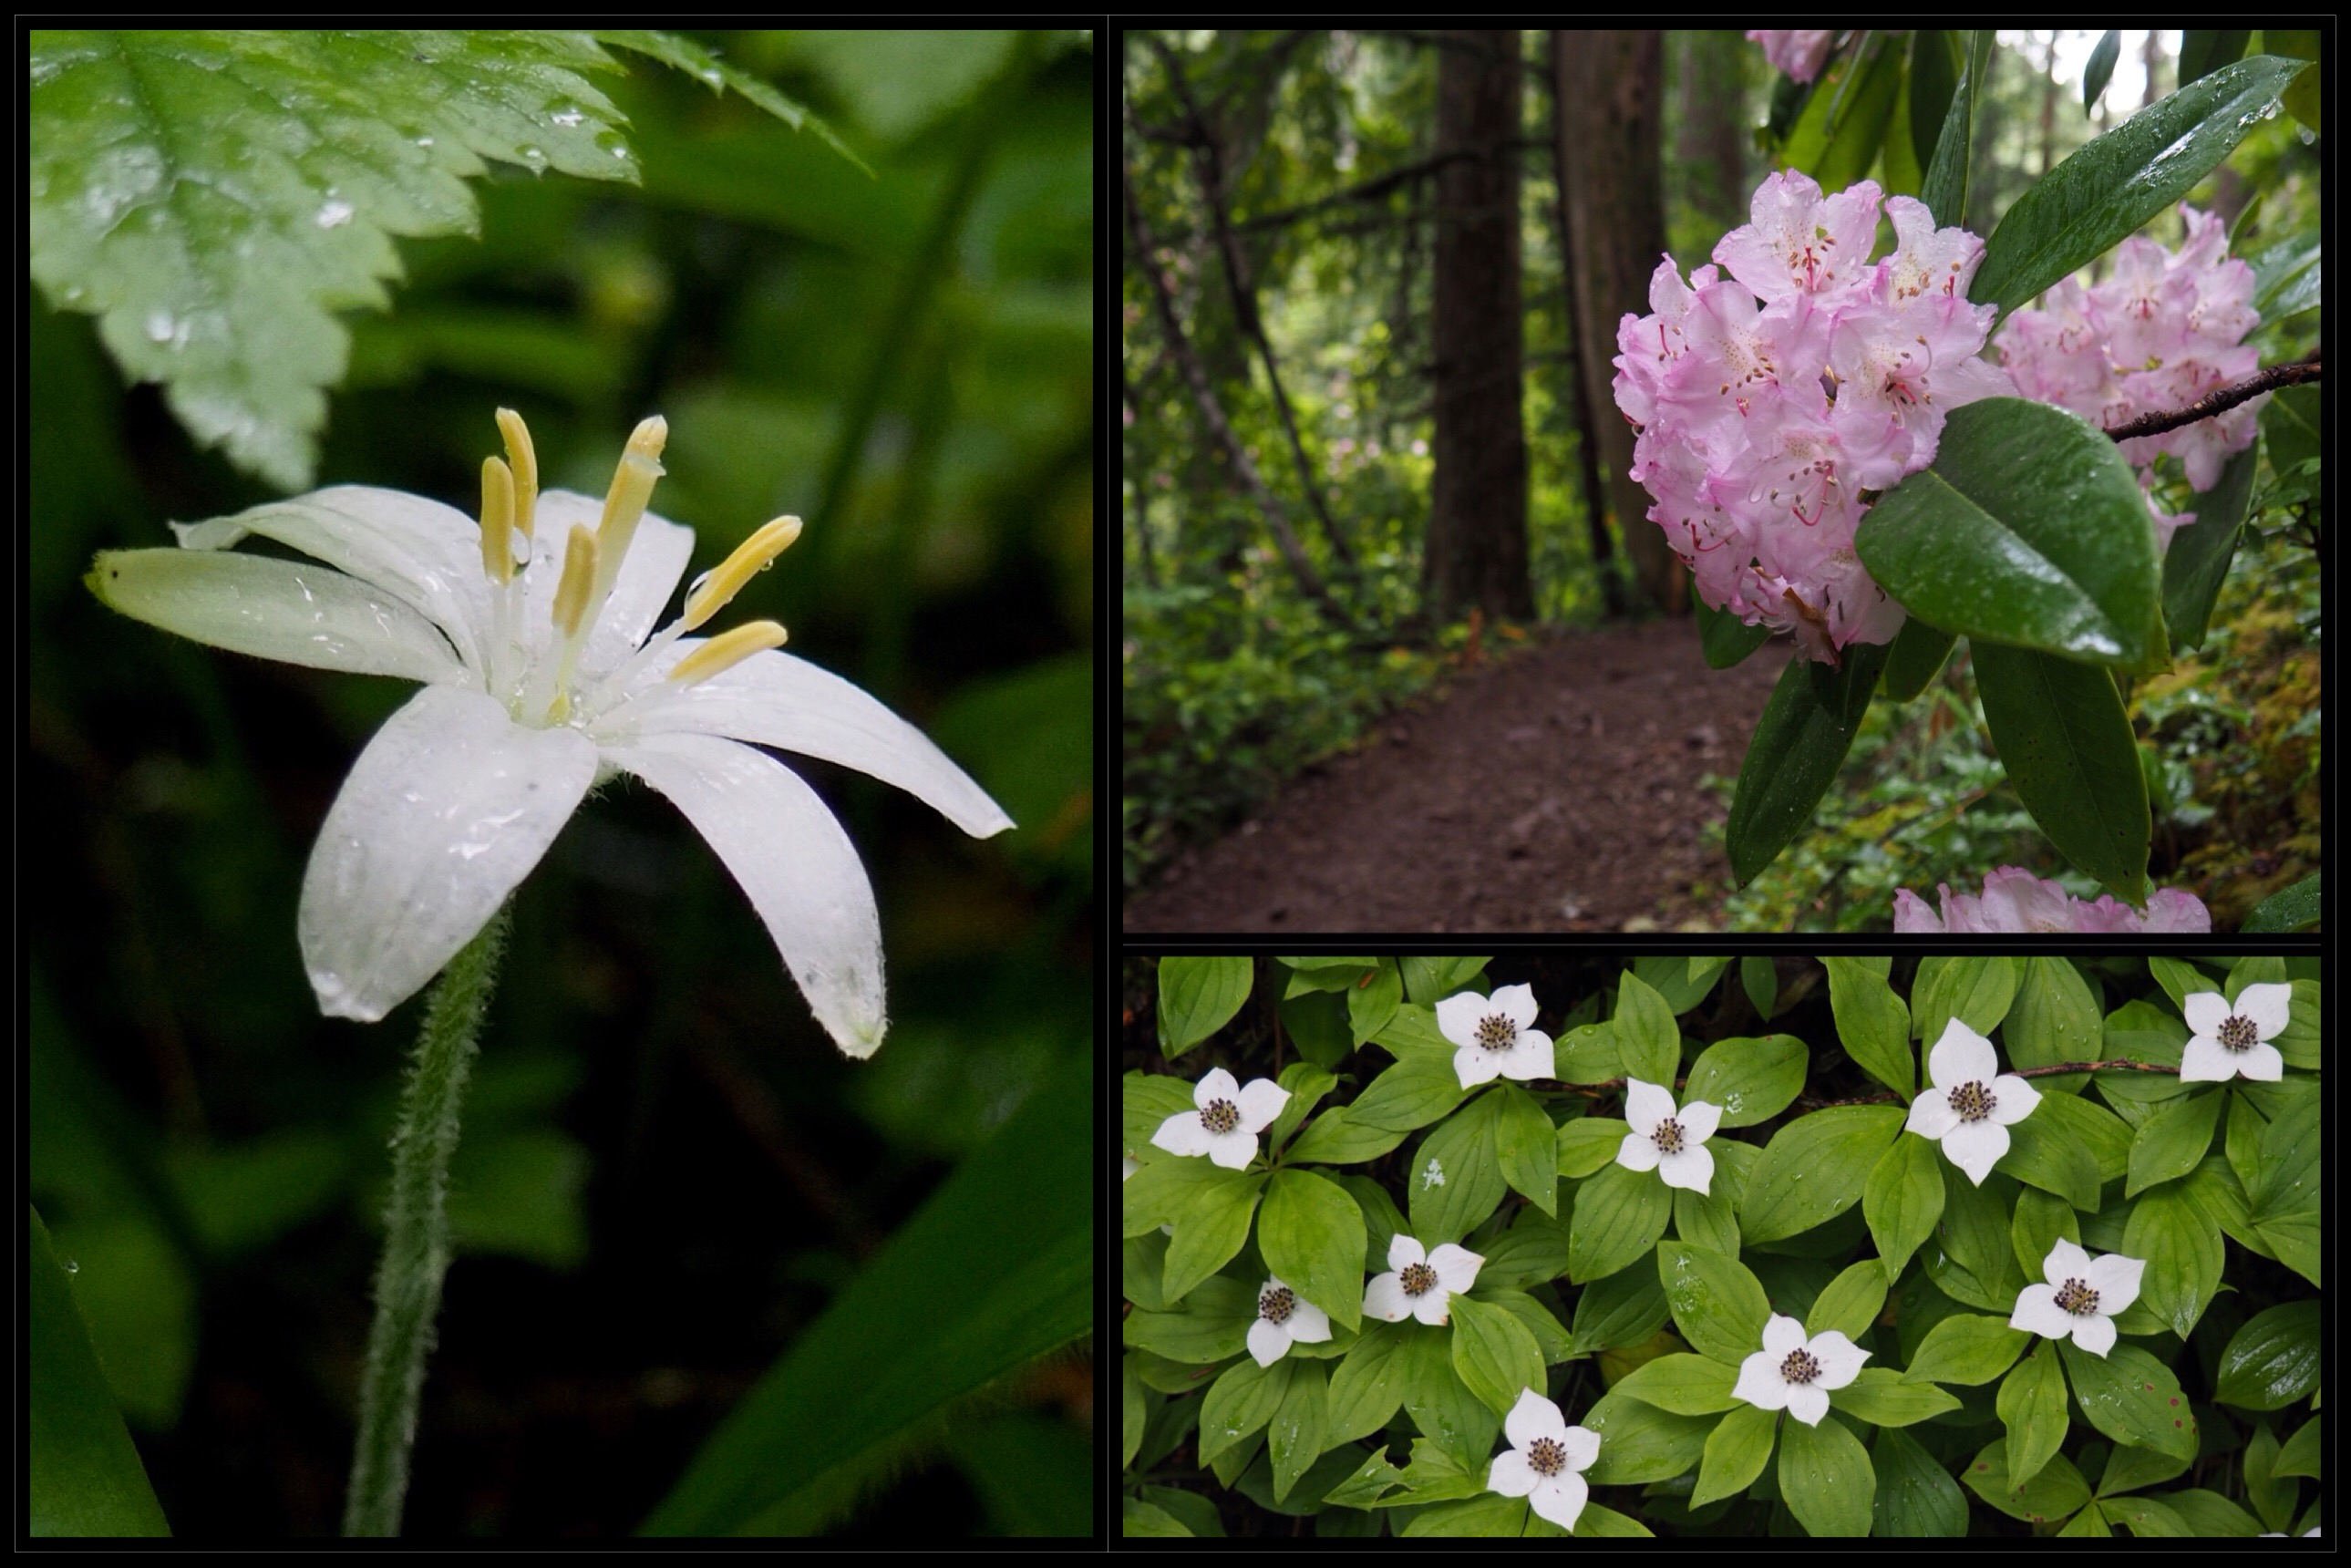 In late spring, Washington's state flower, the Pacific, or coast rhododendron (Rhododendron macrophyllum) (upper right) graces the shadowy, lower-elevation woodland with giant blossoms rivaling those of its hybrid garden cousins in form and hue, while queen's cups (Clintonia uniflora) (left) and western bunchberries (Cornus unalaschkensis) (lower right) carpet the forest floor with myriad starry blooms. Upper Big Quilcene Trail, June 16, 2016.